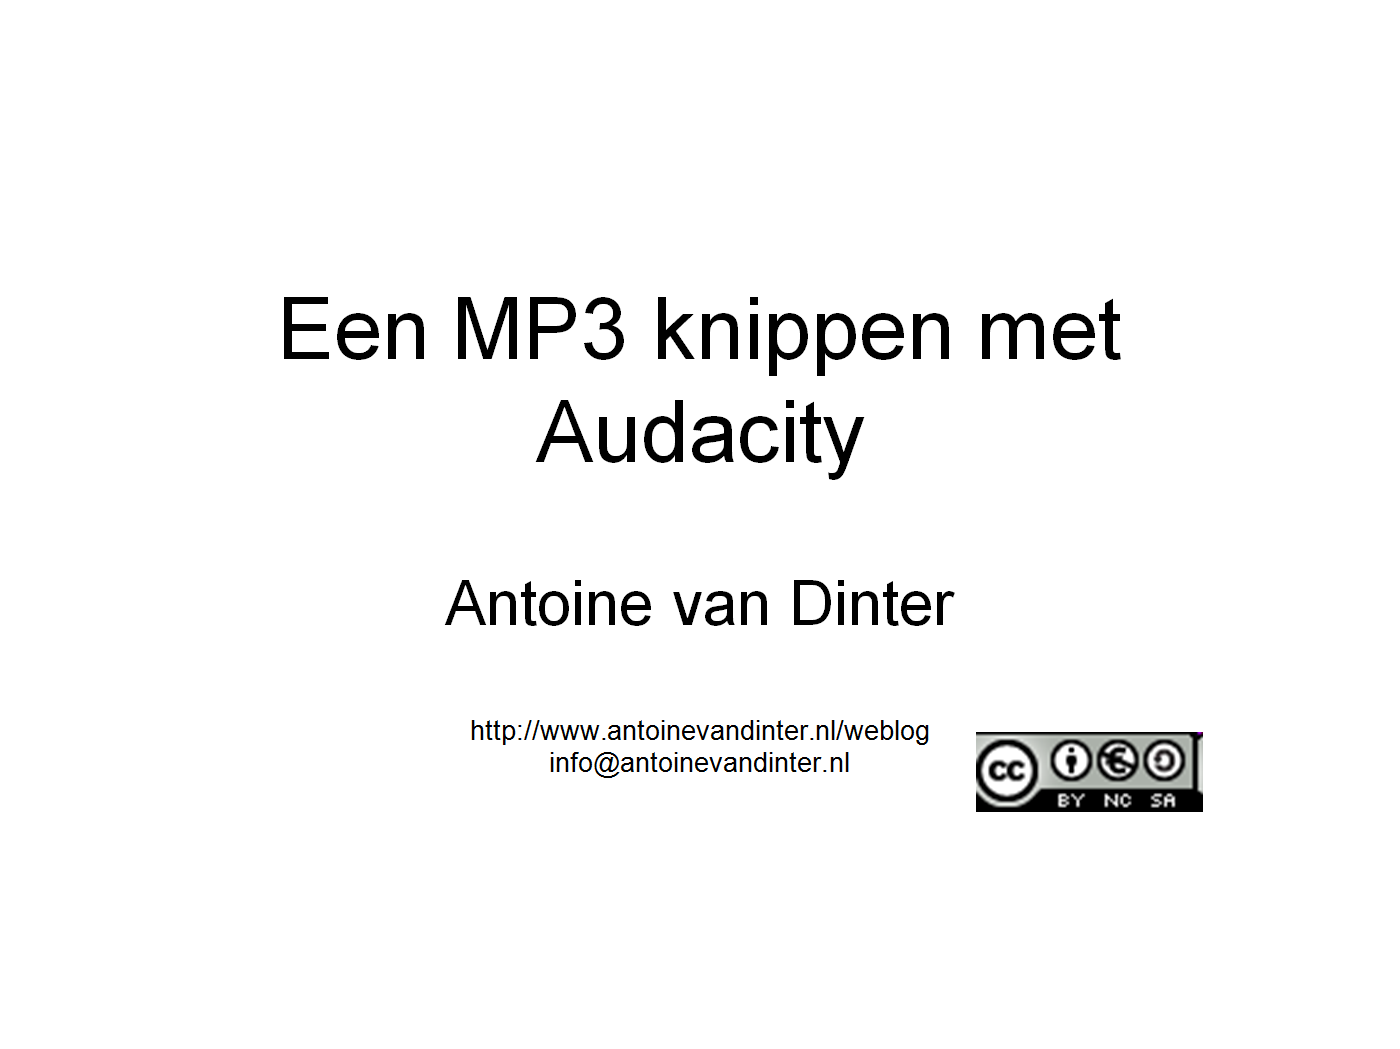 MP3 knippen met Audacity | PopScreen